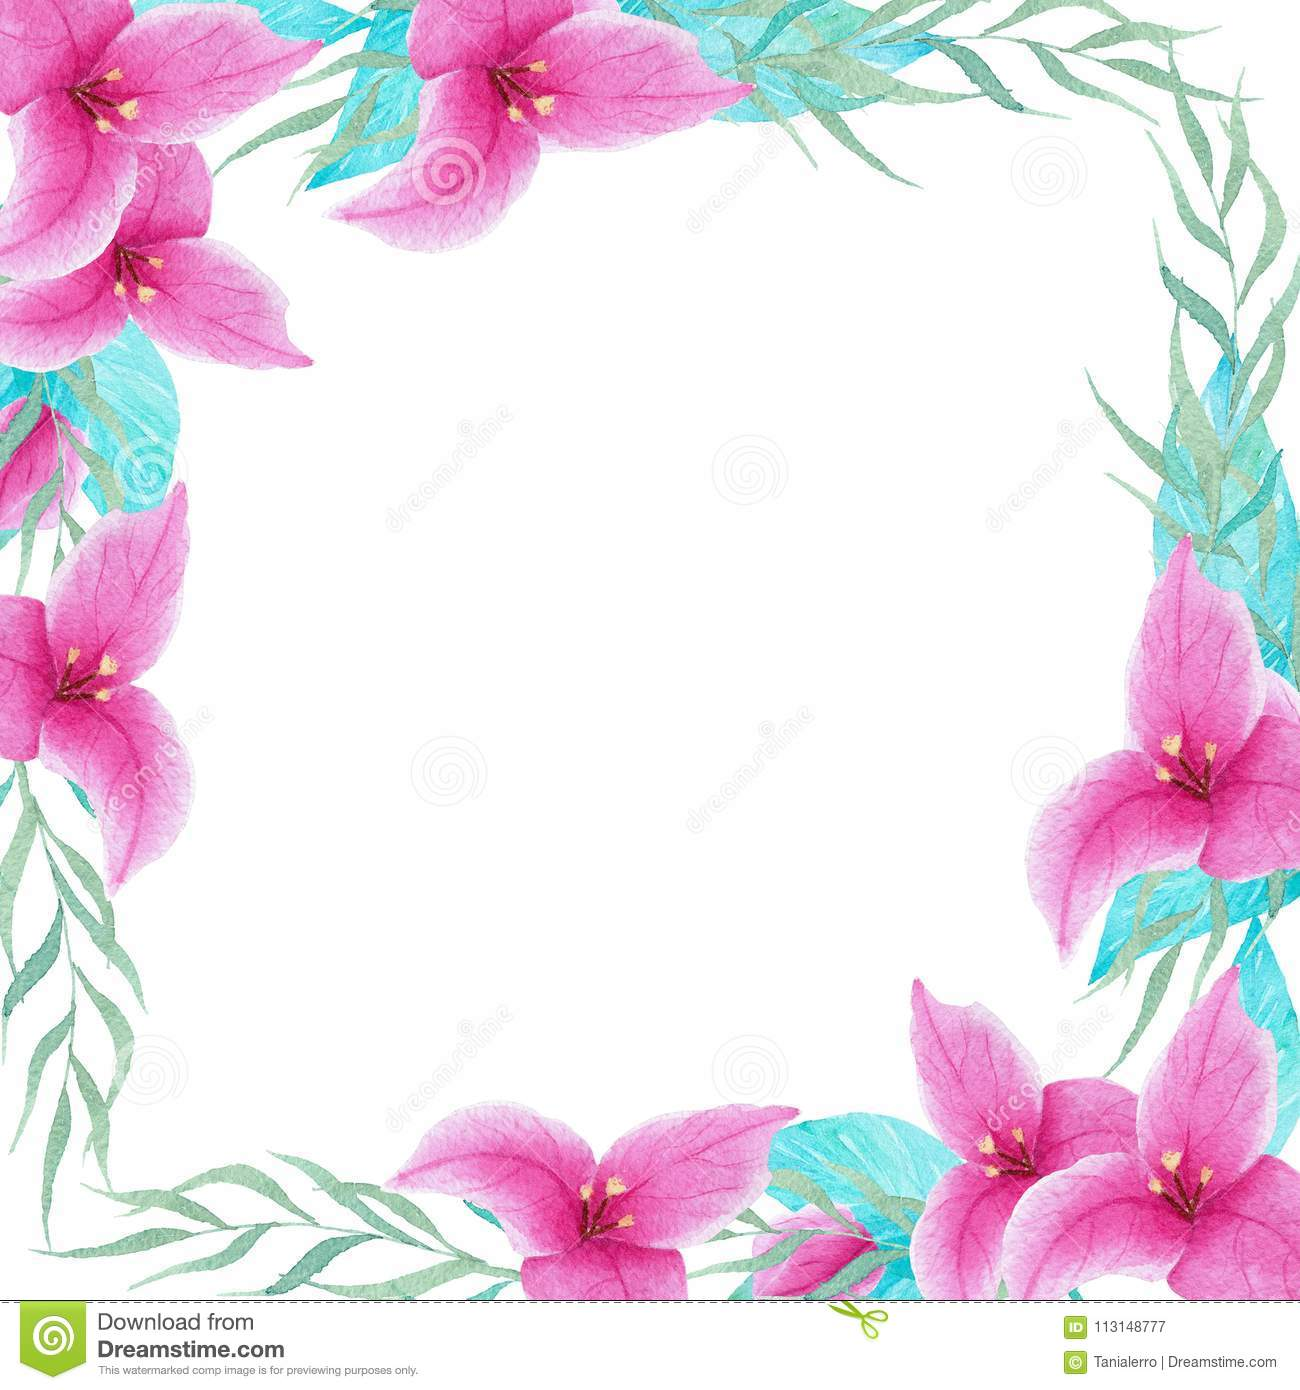 Hand Painted Watercolor Bouganvillea Flower Frame Border. Perfect ...